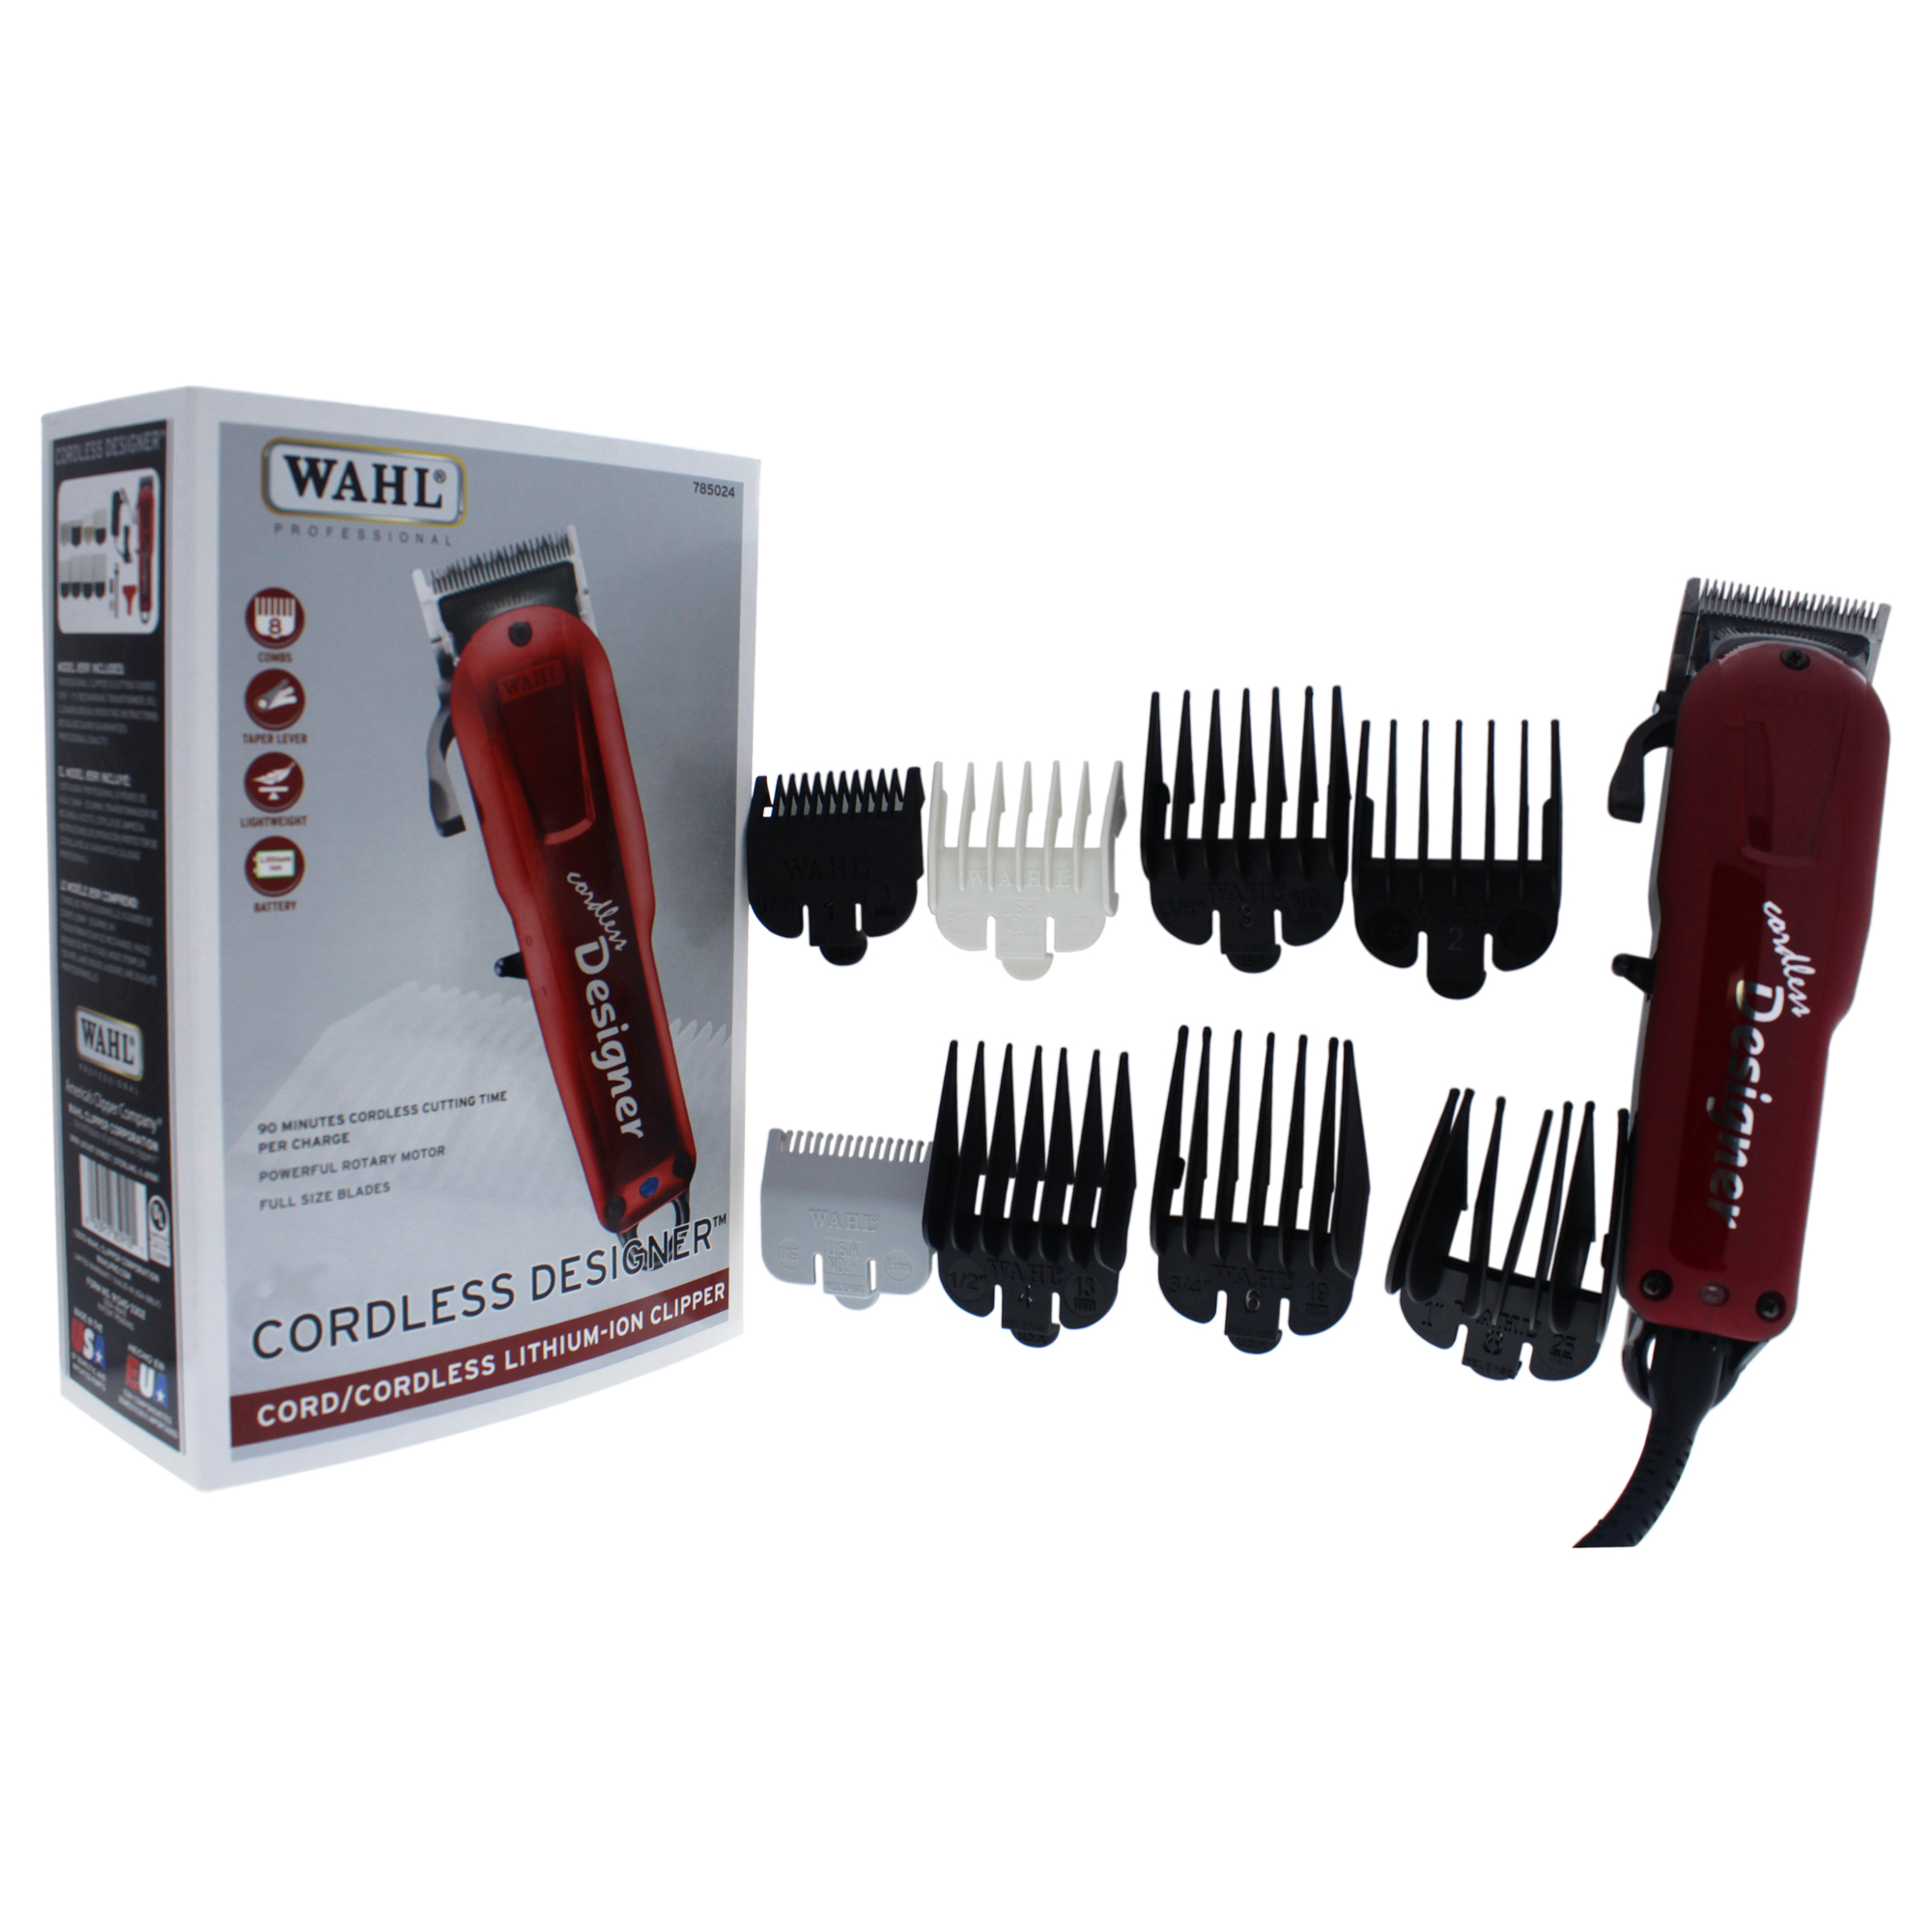 WAHL Professional Cordless Designer Cord/Cordless Lithium-Ion Clipper - Model # 8591 - Red - 1 Pc Clipper